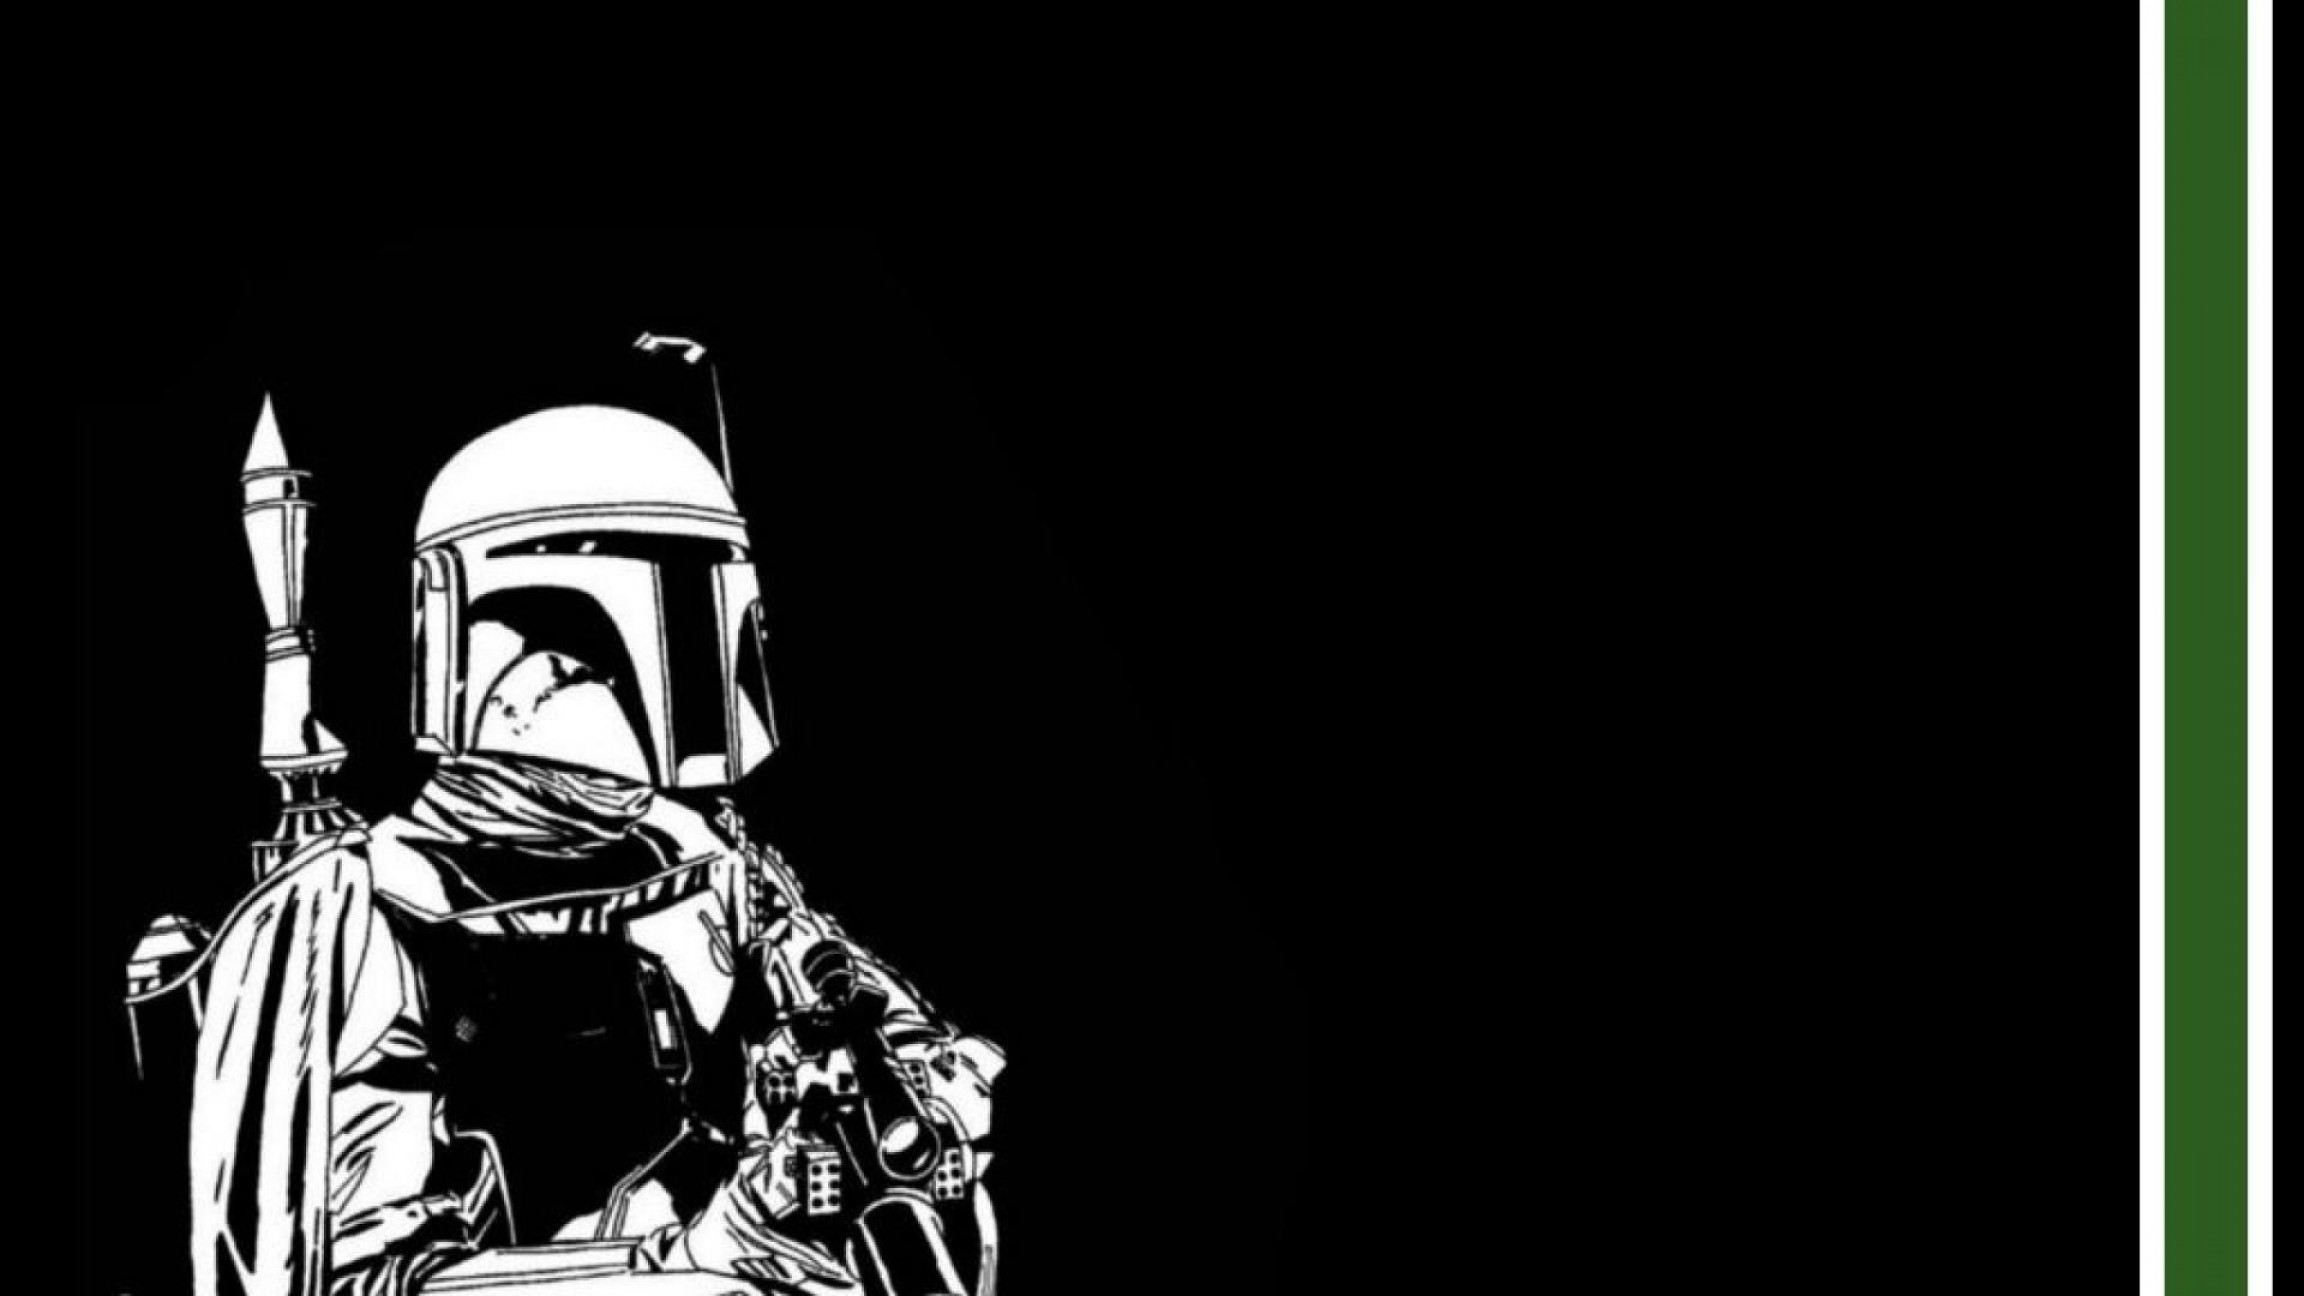 Boba Fett Vector Black And White: Boba Fett Star Wars Black Green White Wallpaper